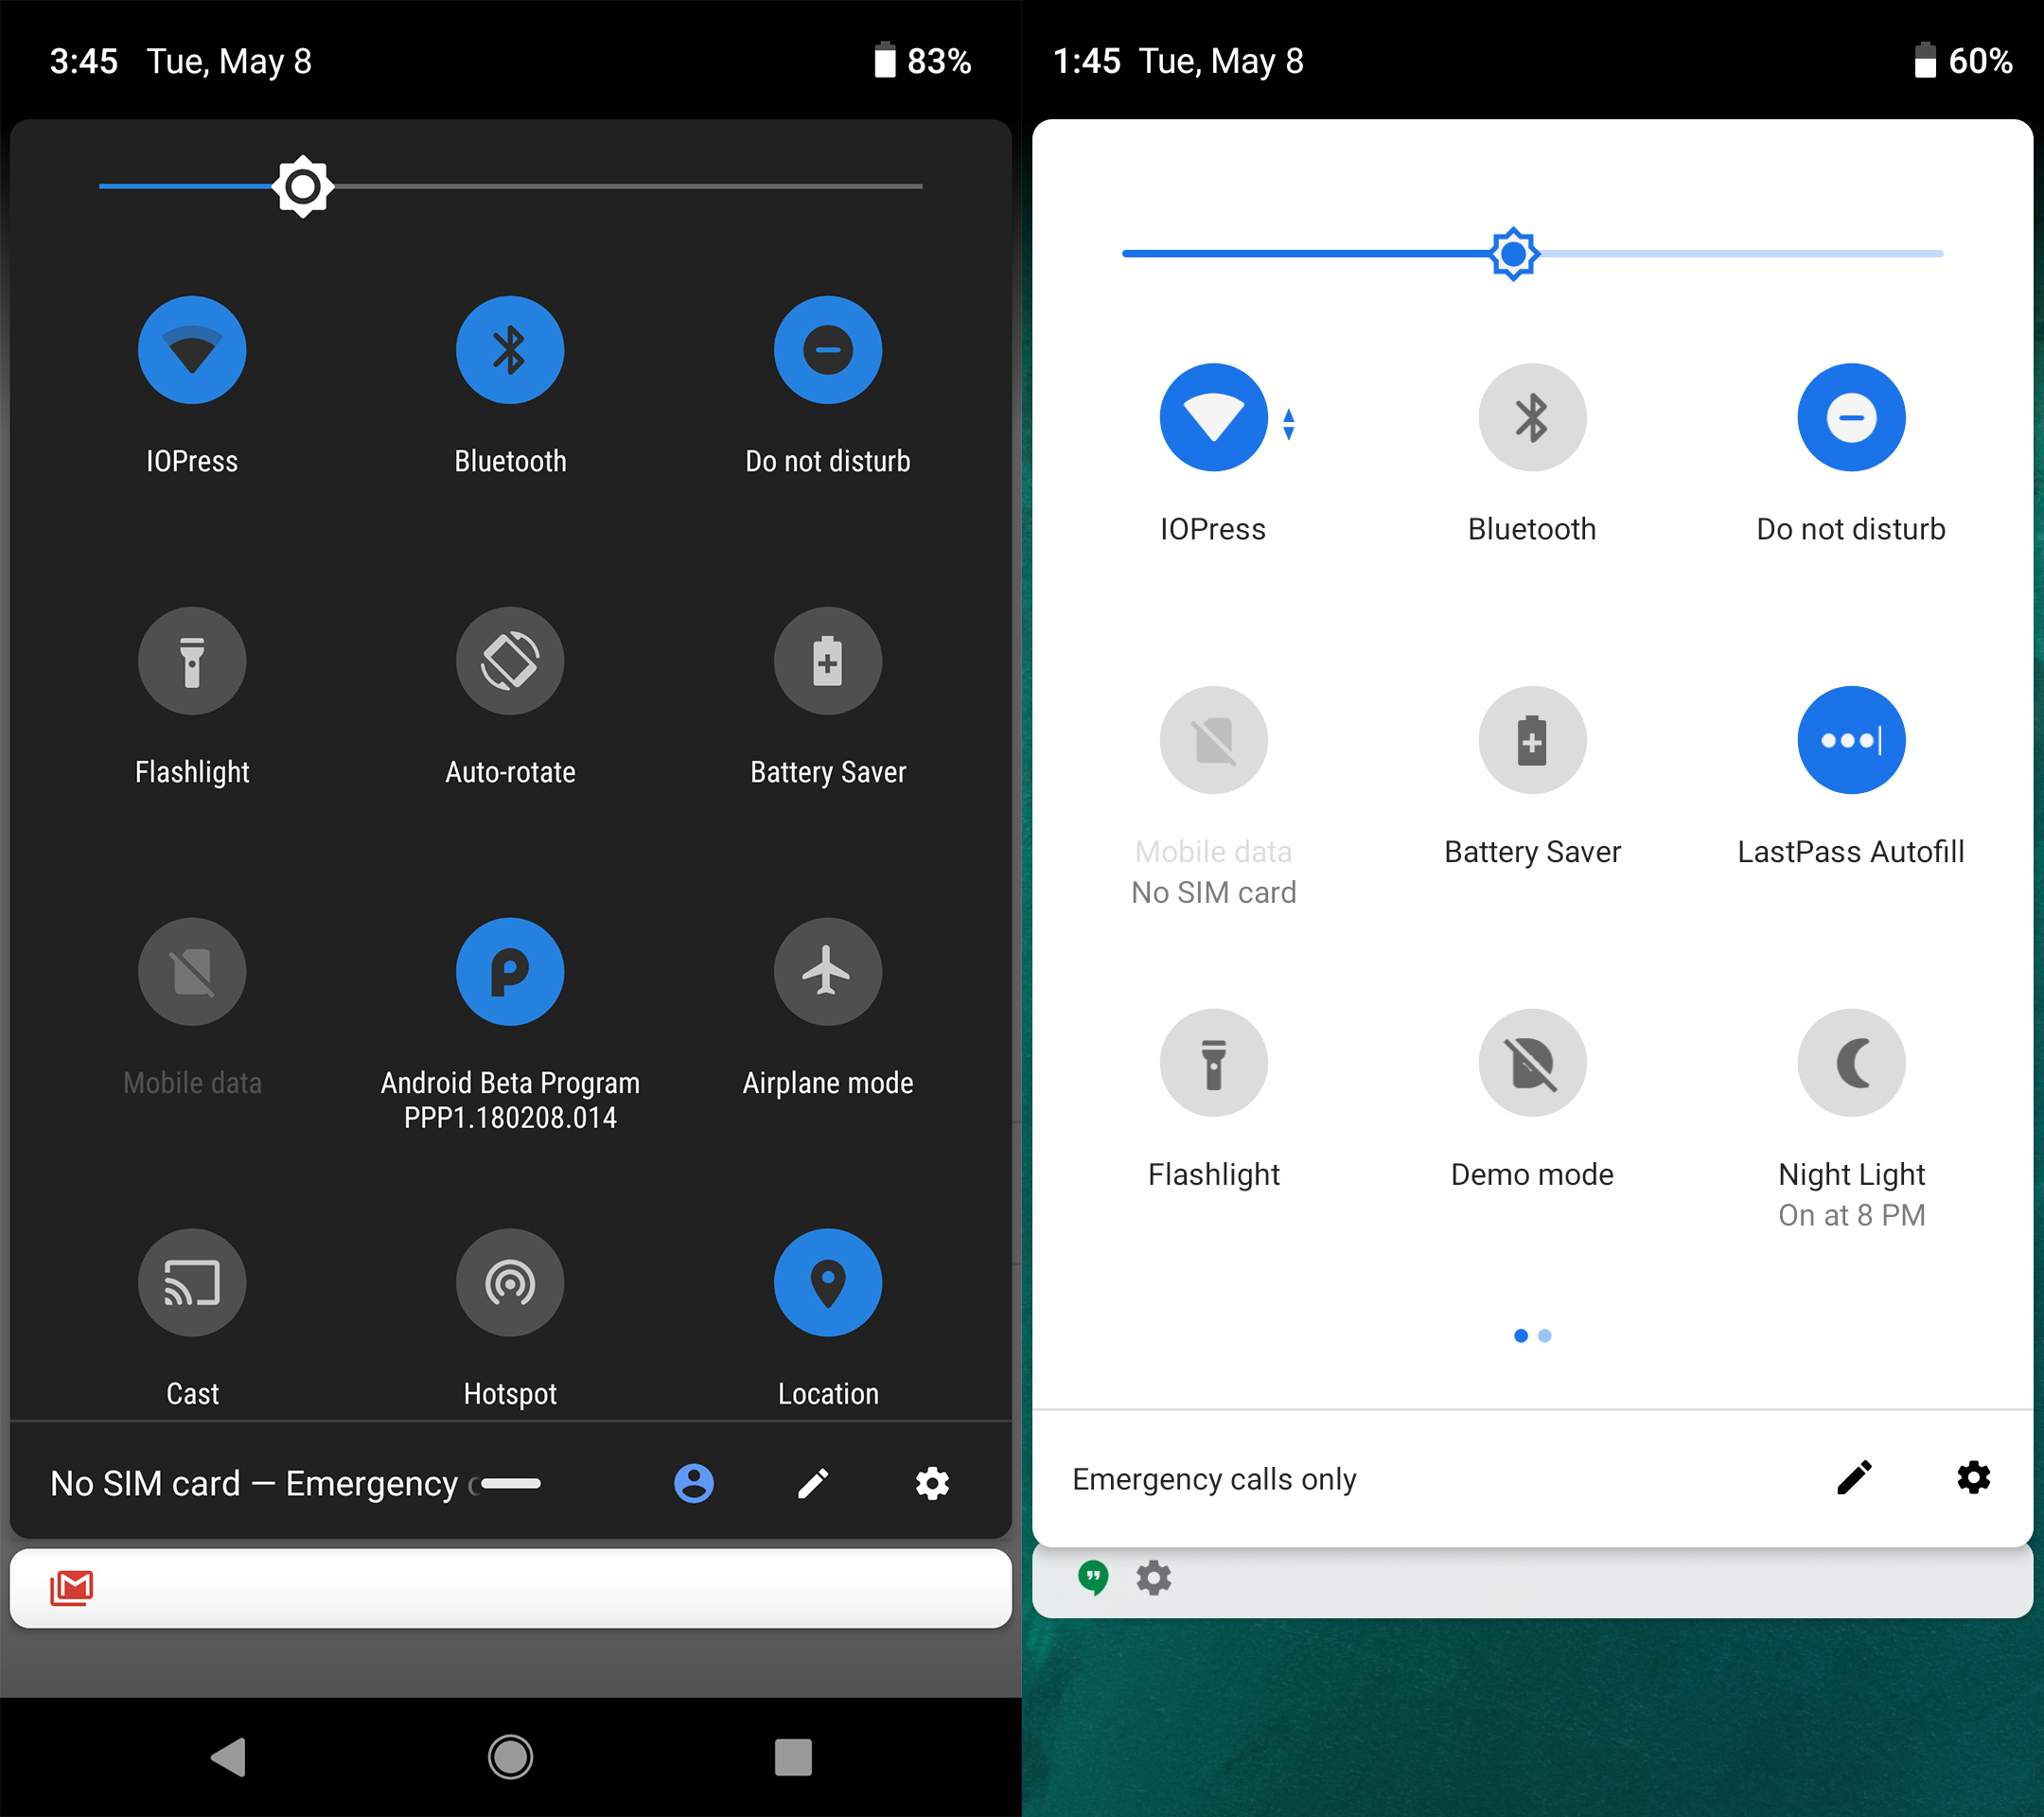 Developer Preview 2 goes back to the paginated quick settings